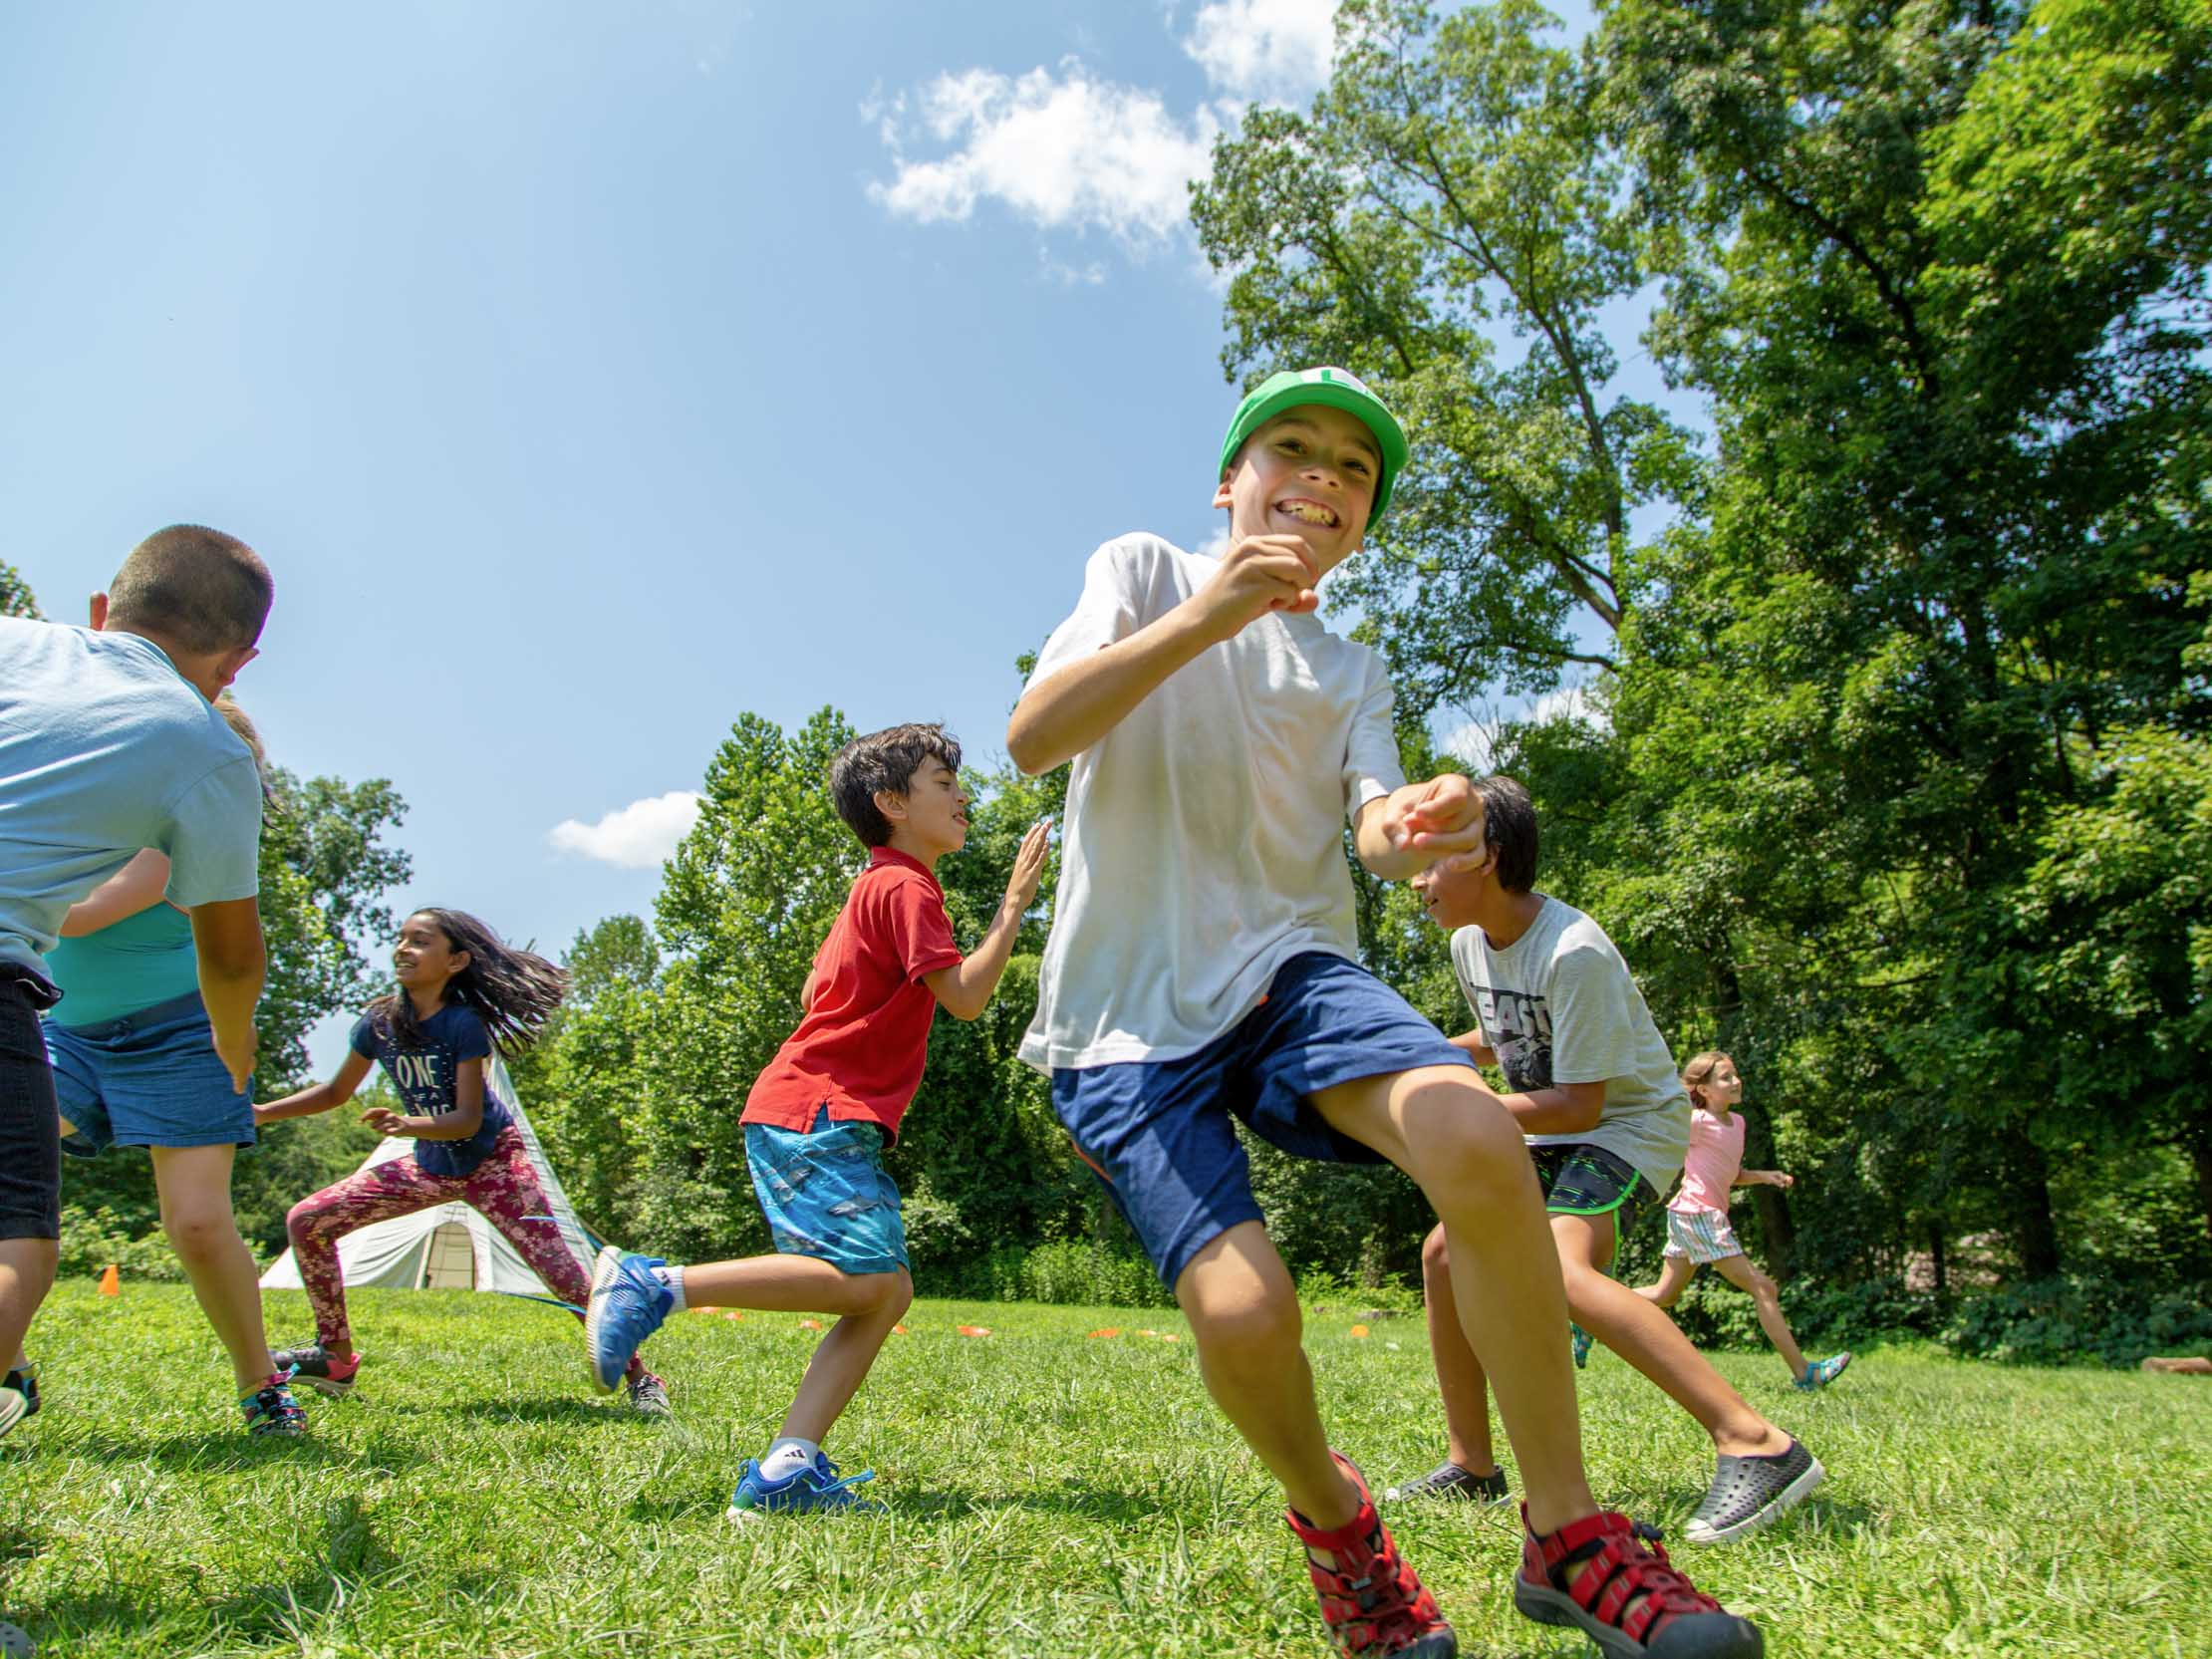 Campers running playing games in the field